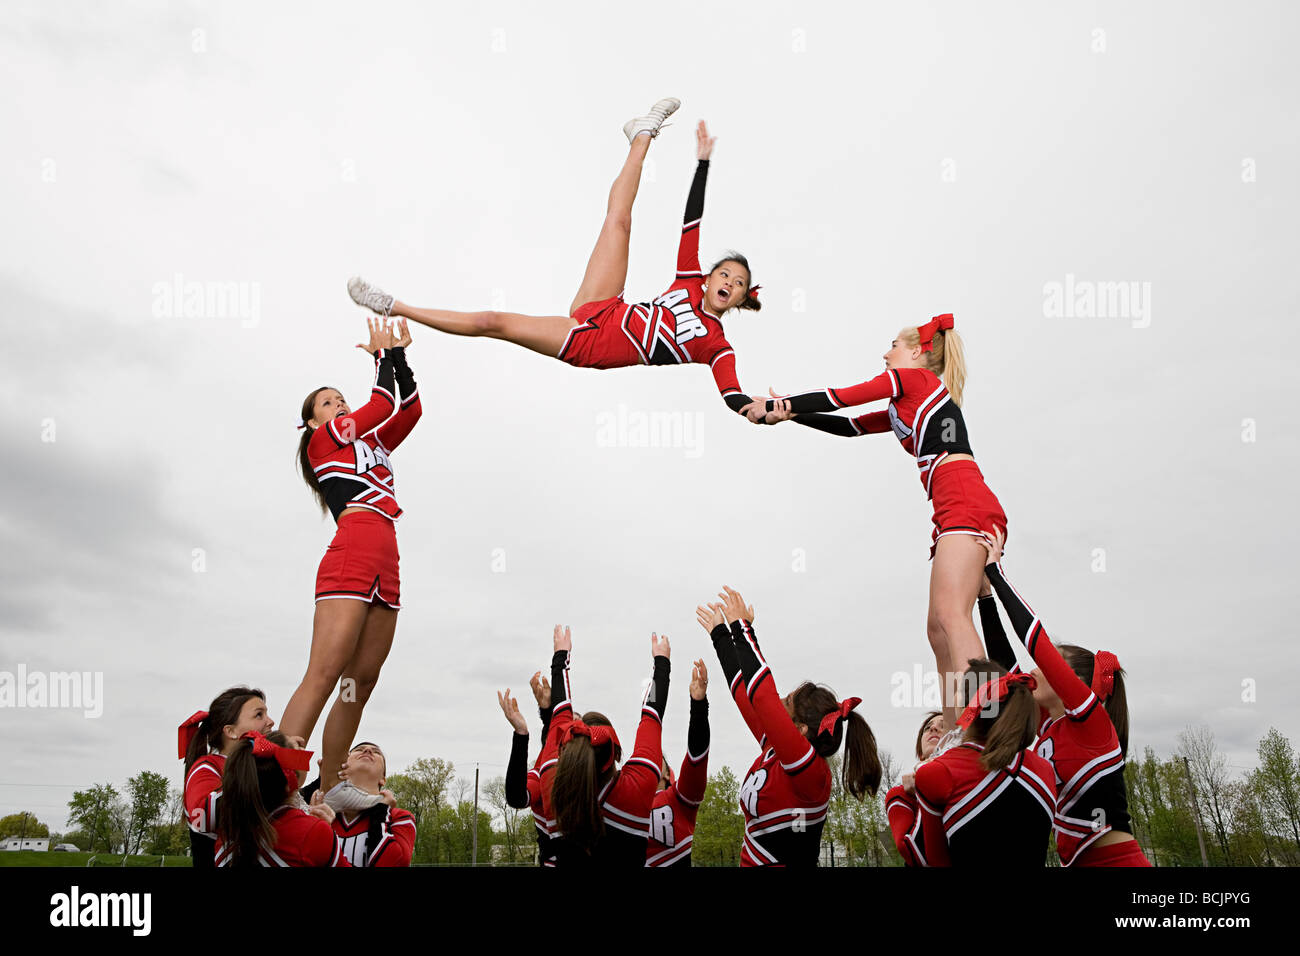 Les opérations routinières de cheerleaders Photo Stock